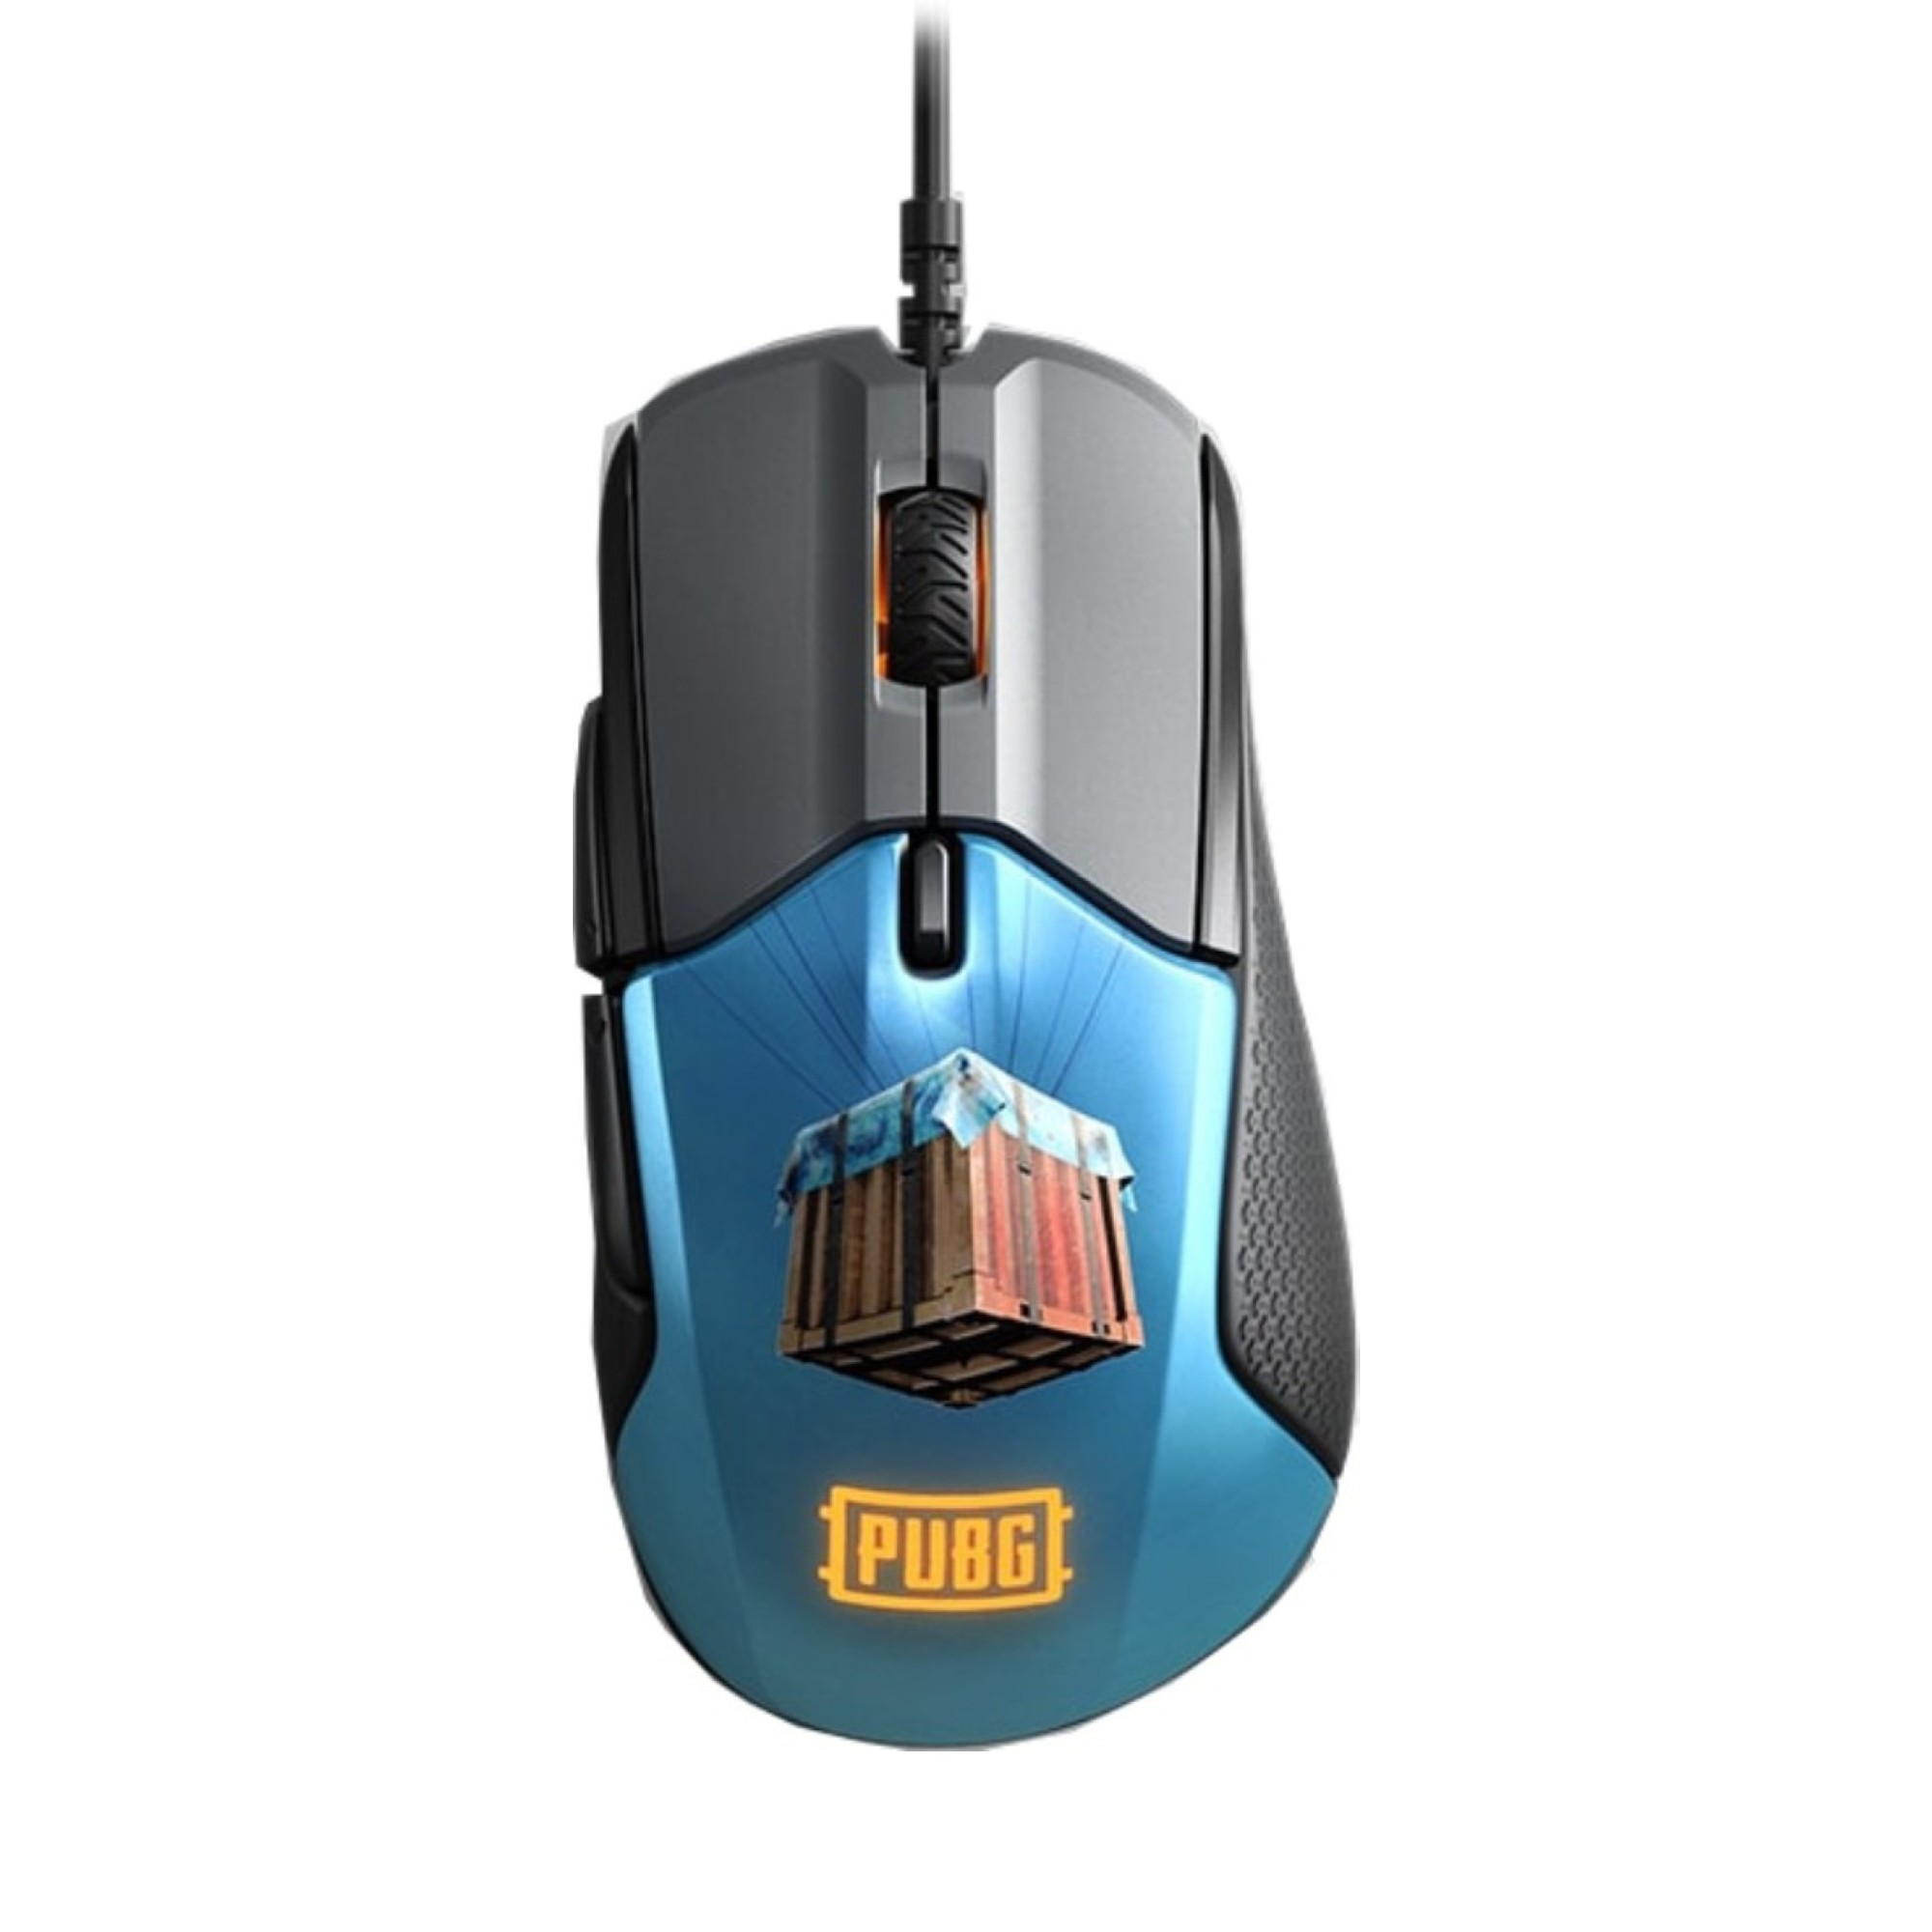 Image of Steelseries Rival 310 PUBG Edition Gaming Mouse